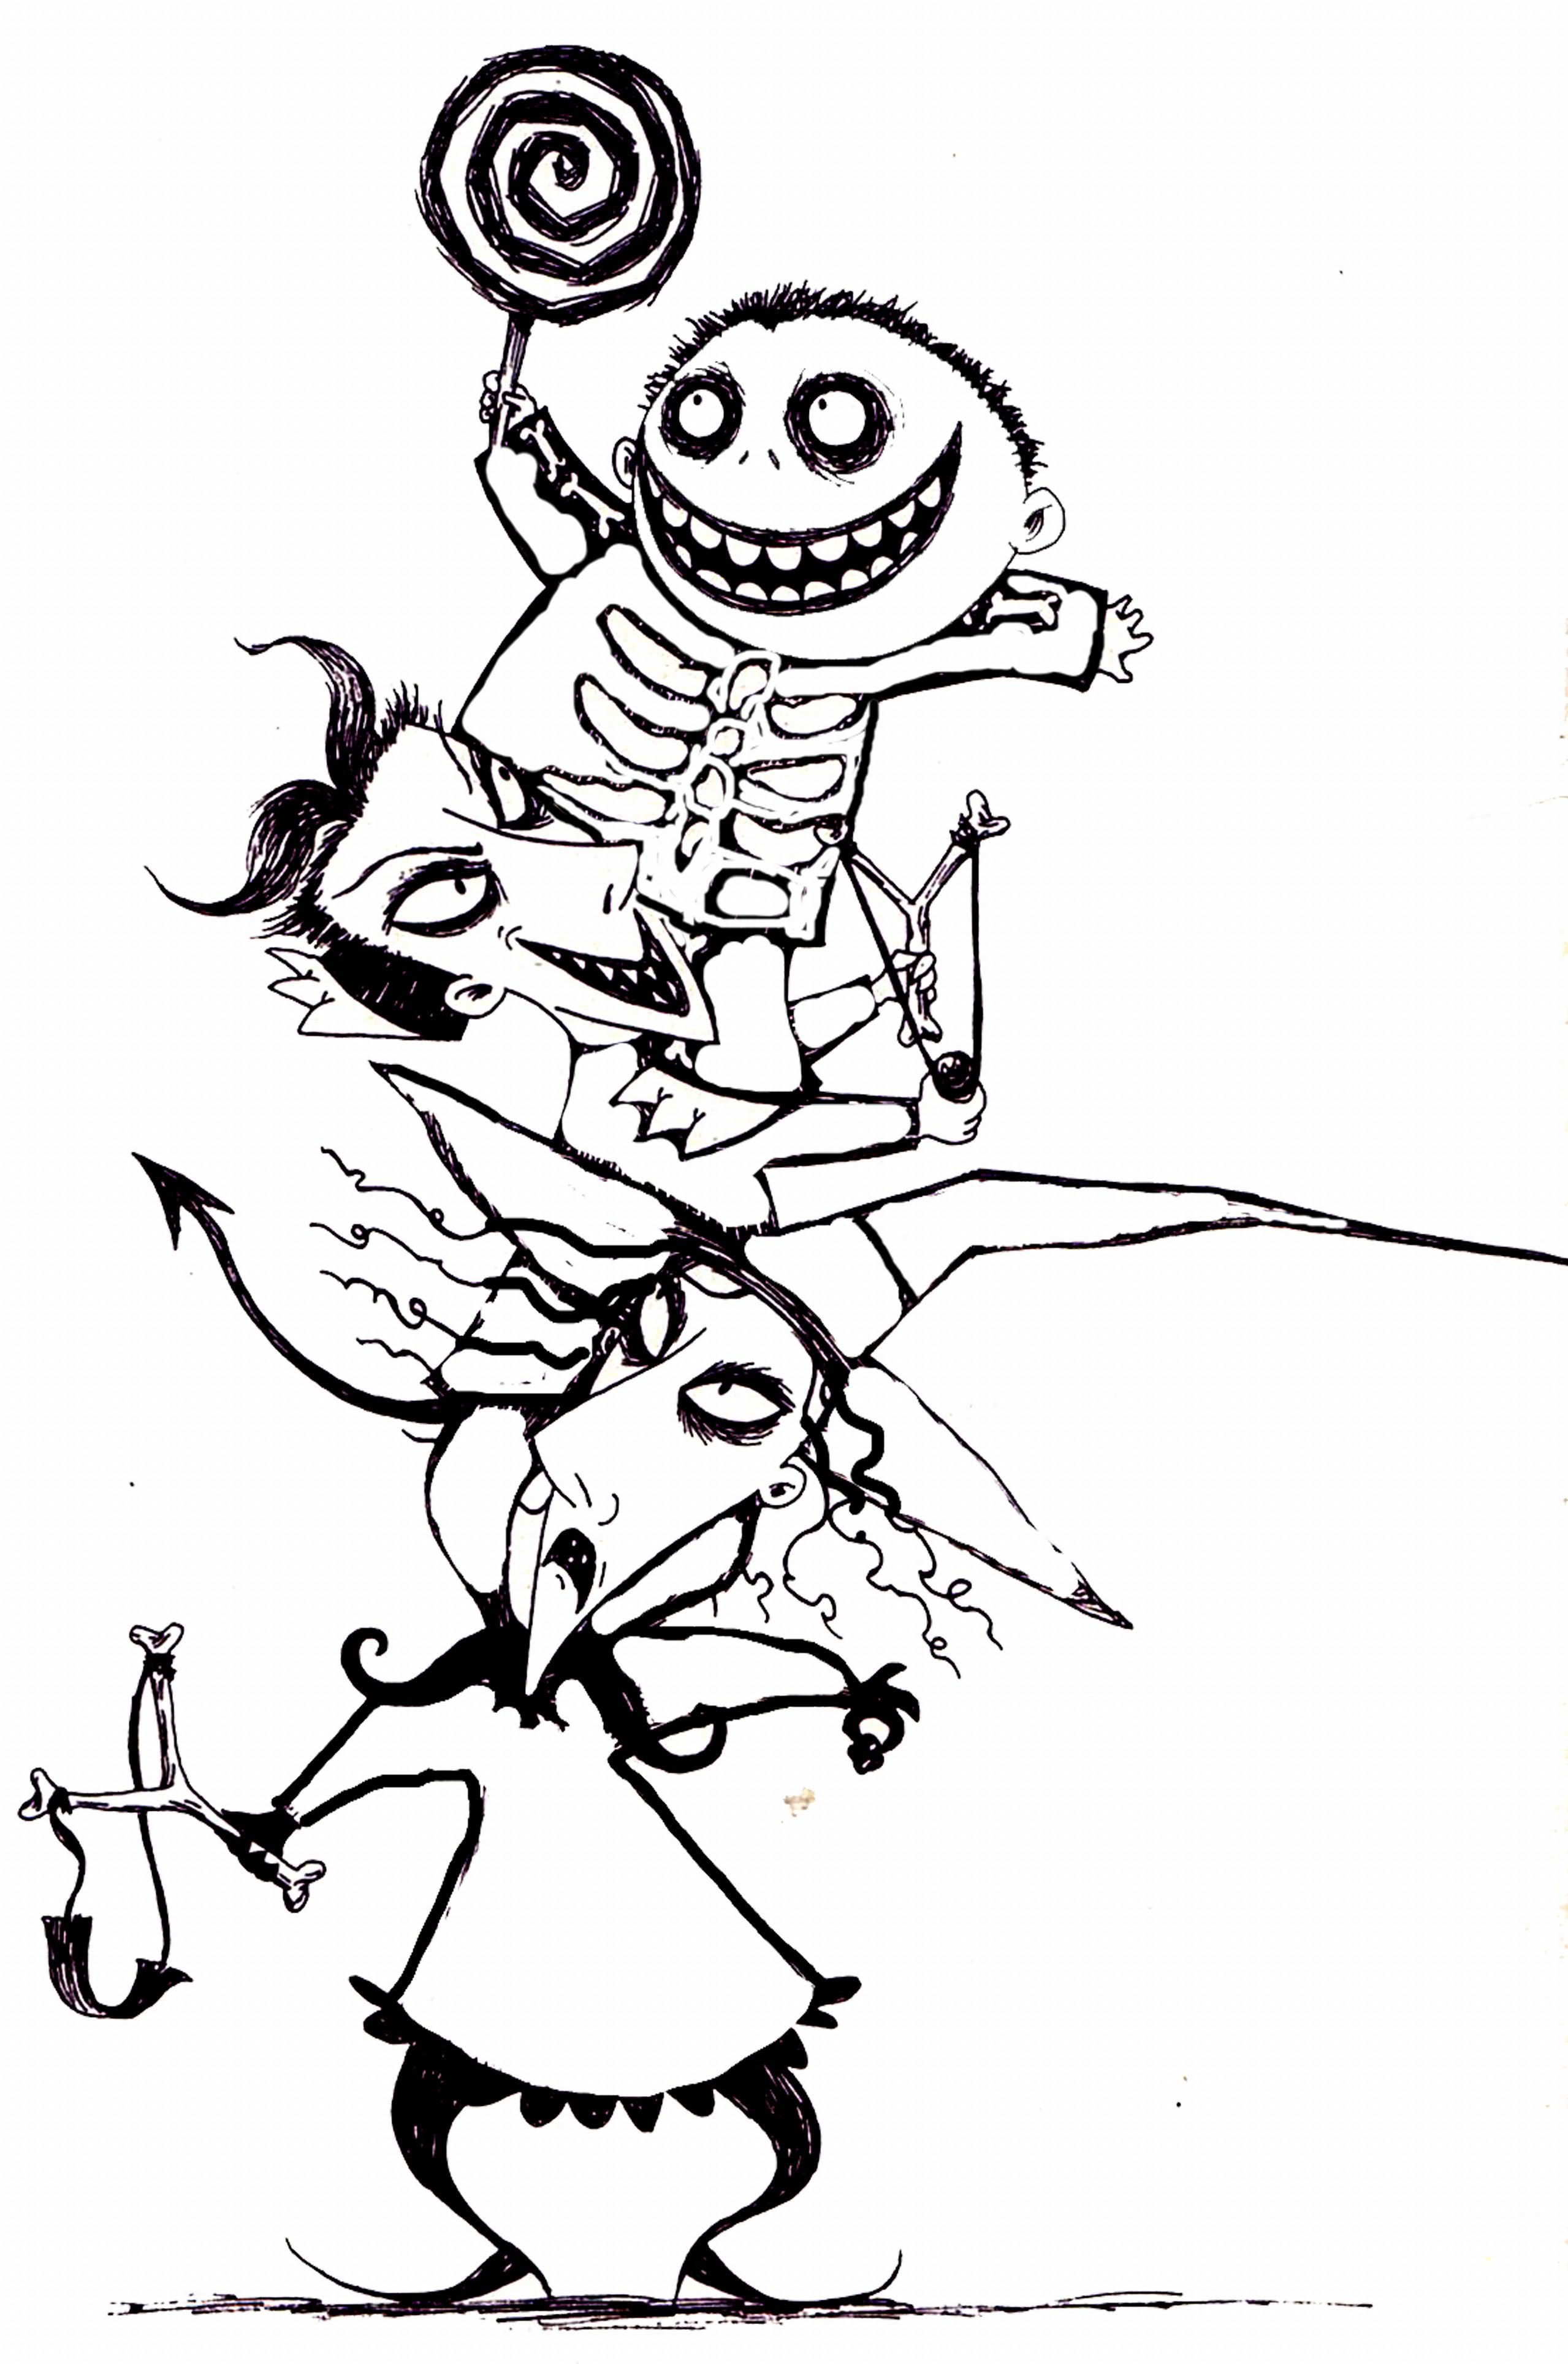 Nightmare before Christmas Coloring Pages  Gallery 14l - To print for your project